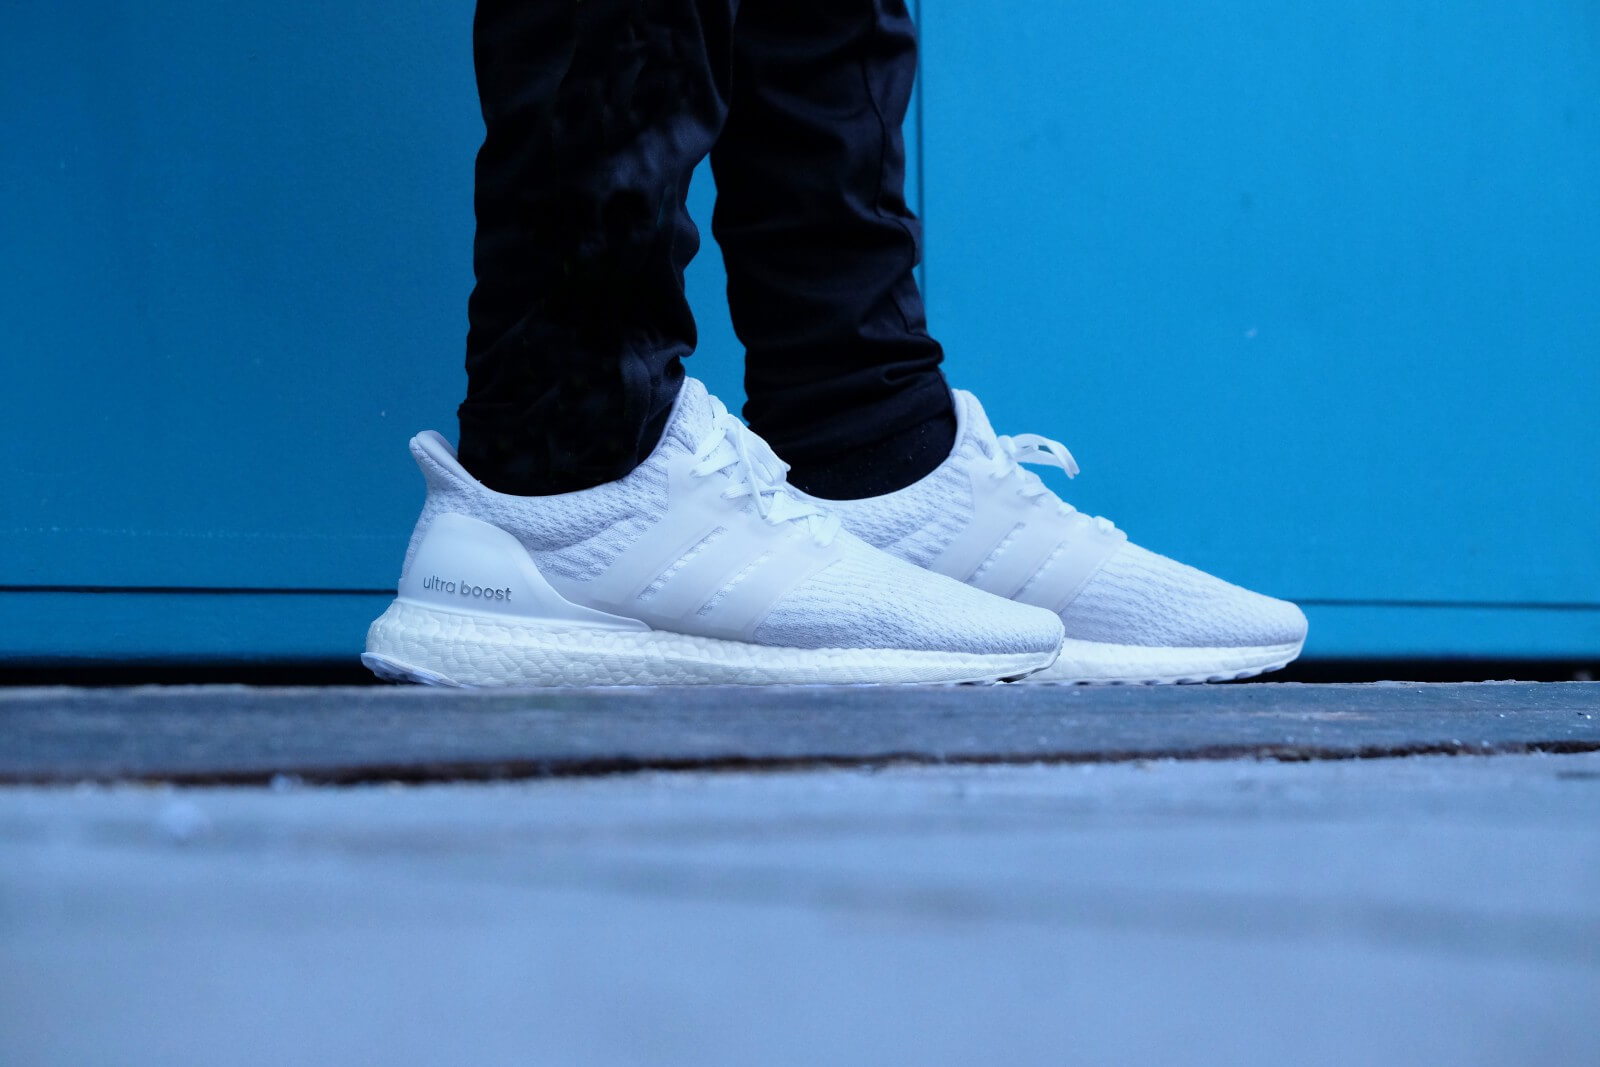 Adidas Adidas Men S Ultra Boost Black White 180 00 Club Benefits - Adidas ultraboost 3 0 royal whitee sneaker politics